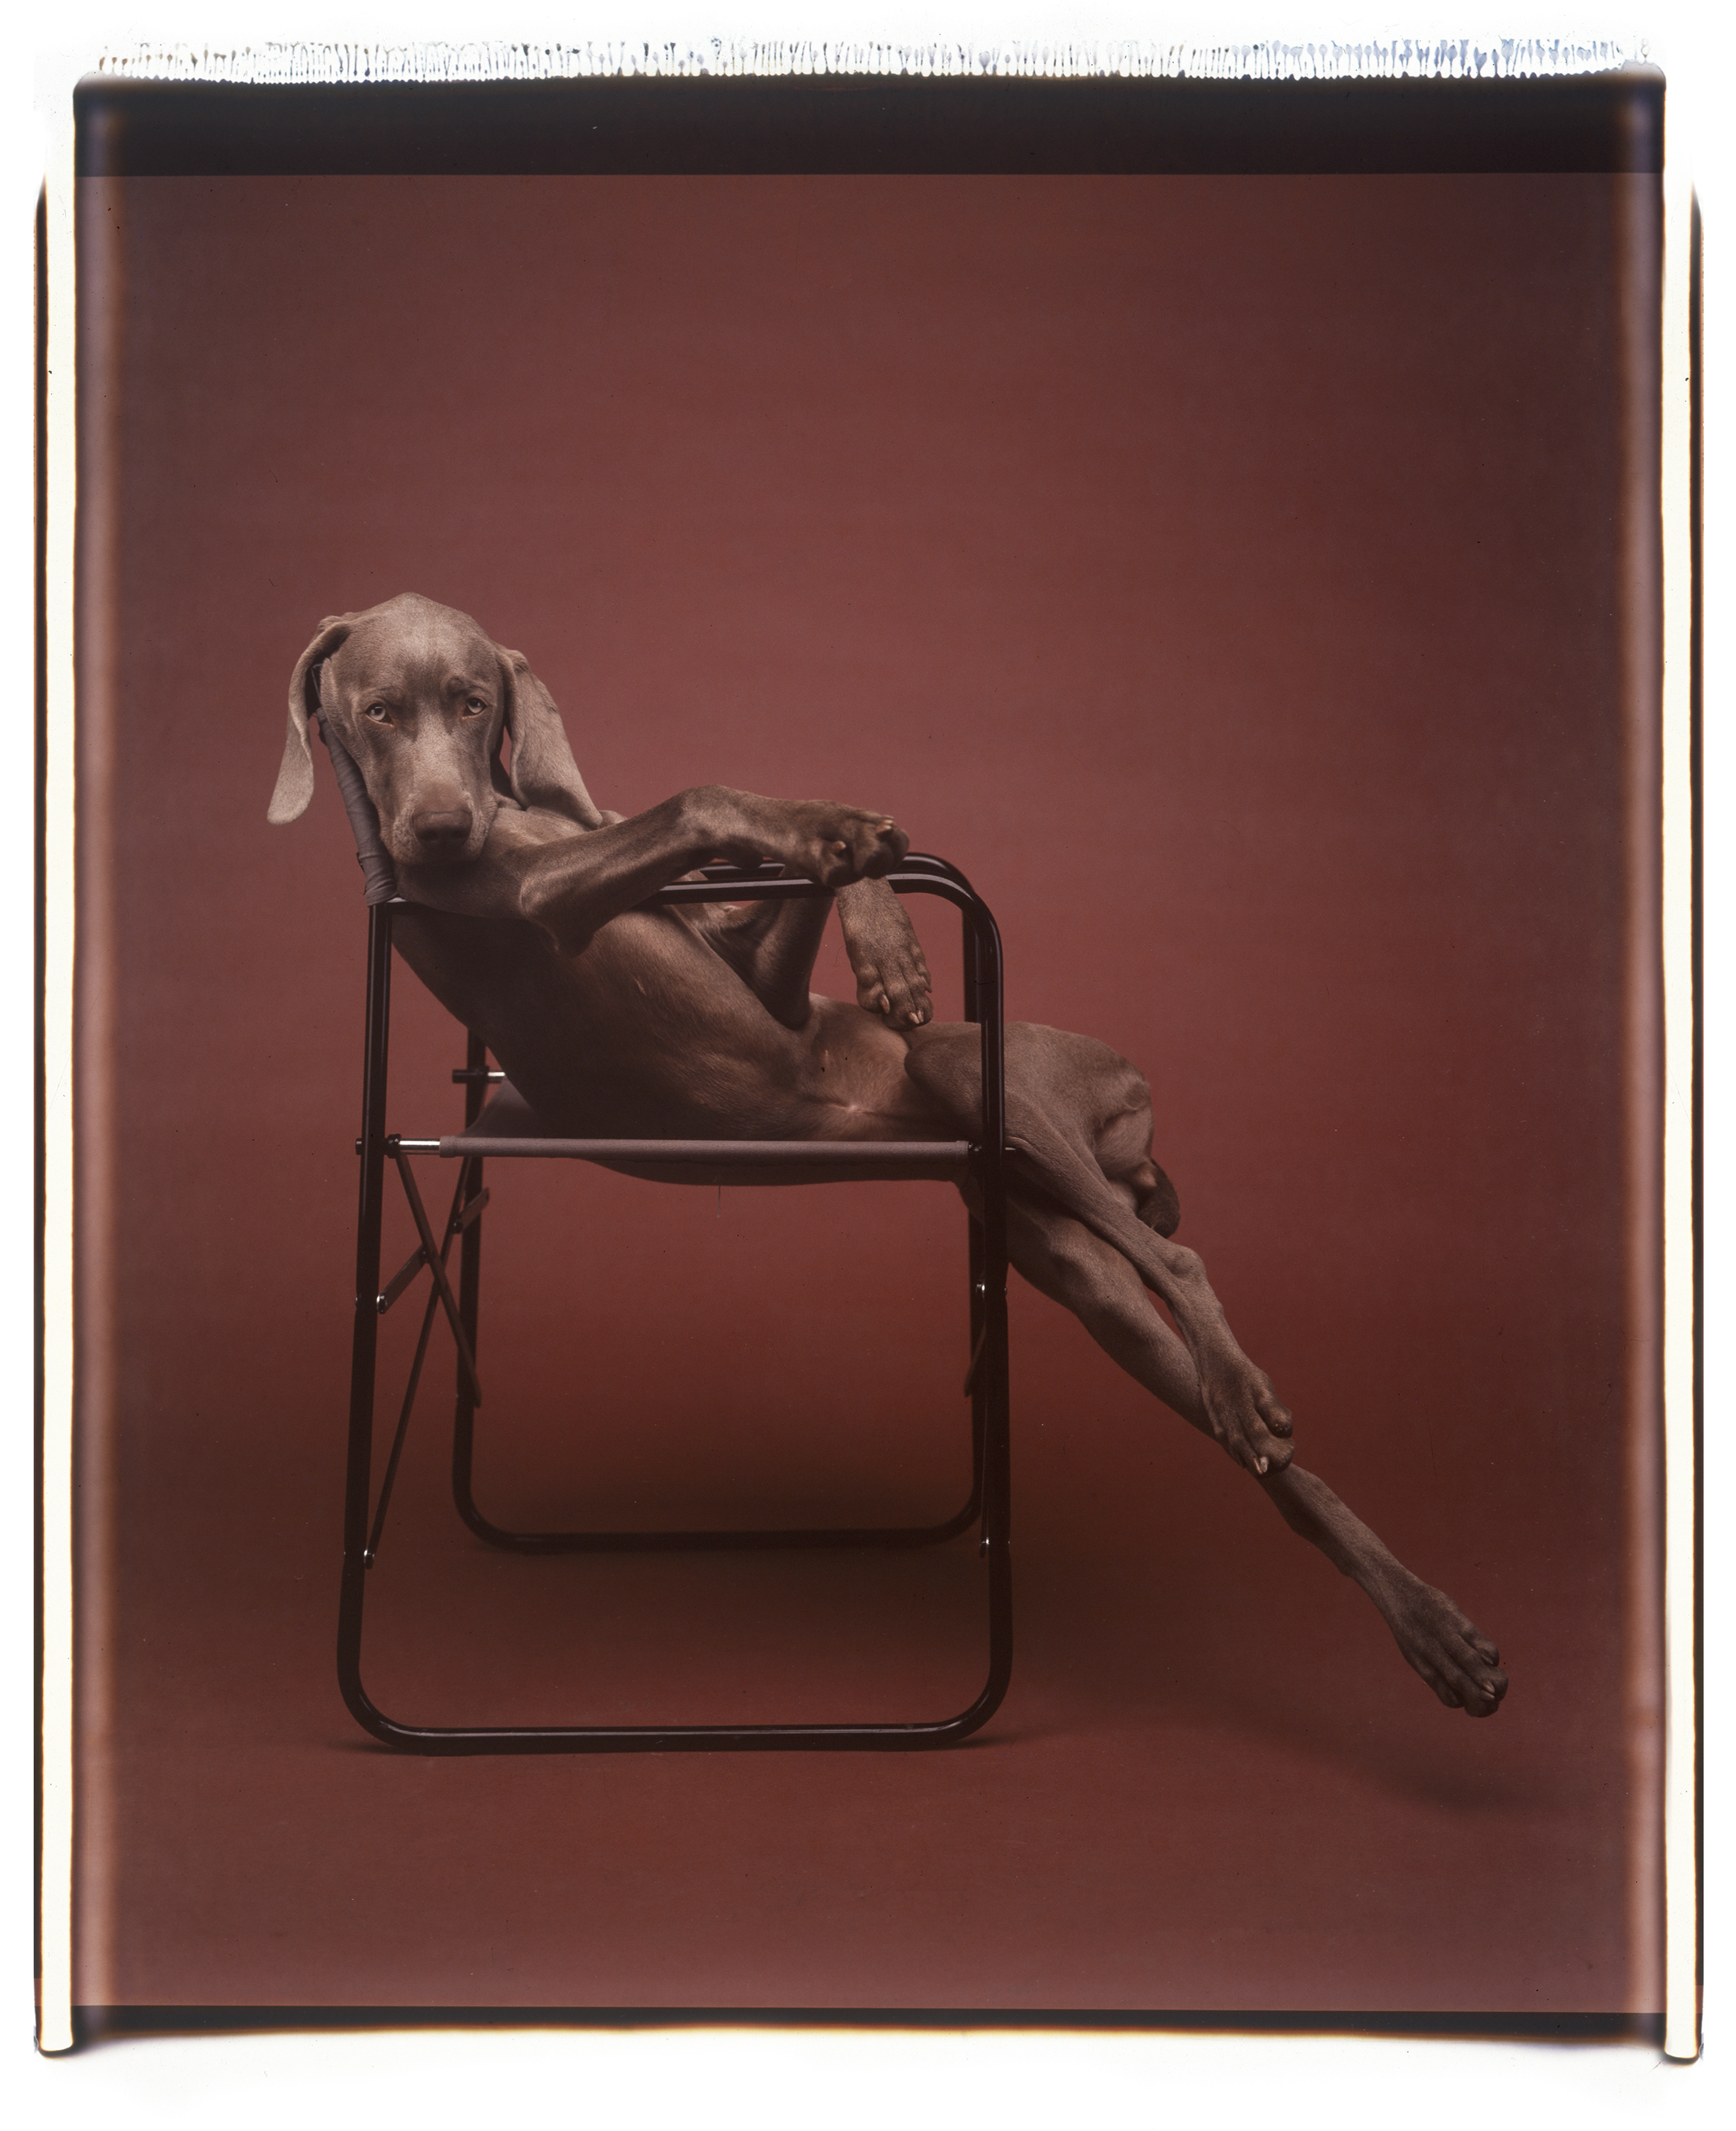 William Wegman: Lolita, 1990 (Seite 318) © William Wegman / courtesy Schirmer/Mosel